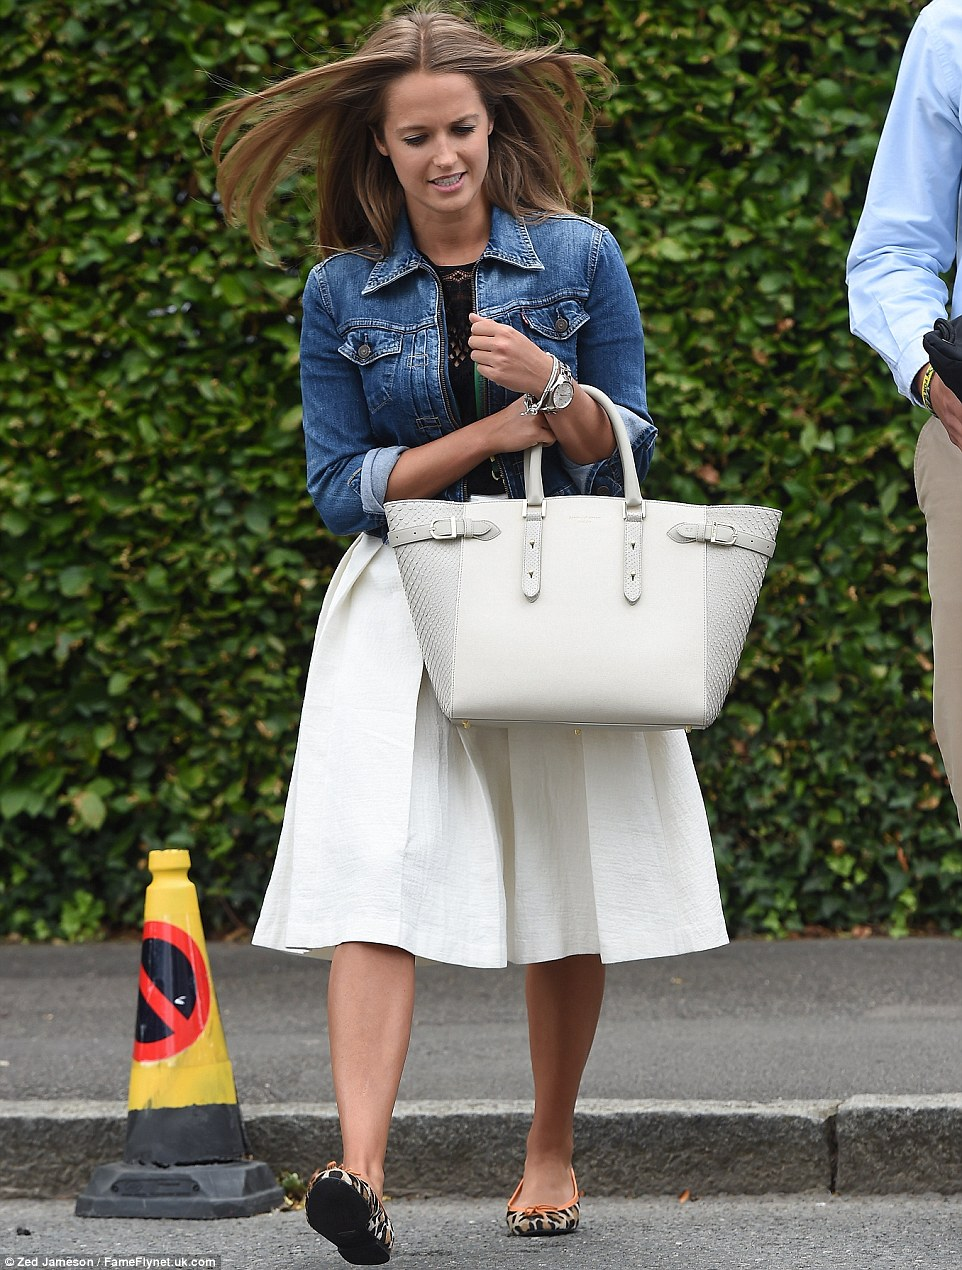 Support: Kim Sears arrives to watch boyfriend Andy Murray play later this evening